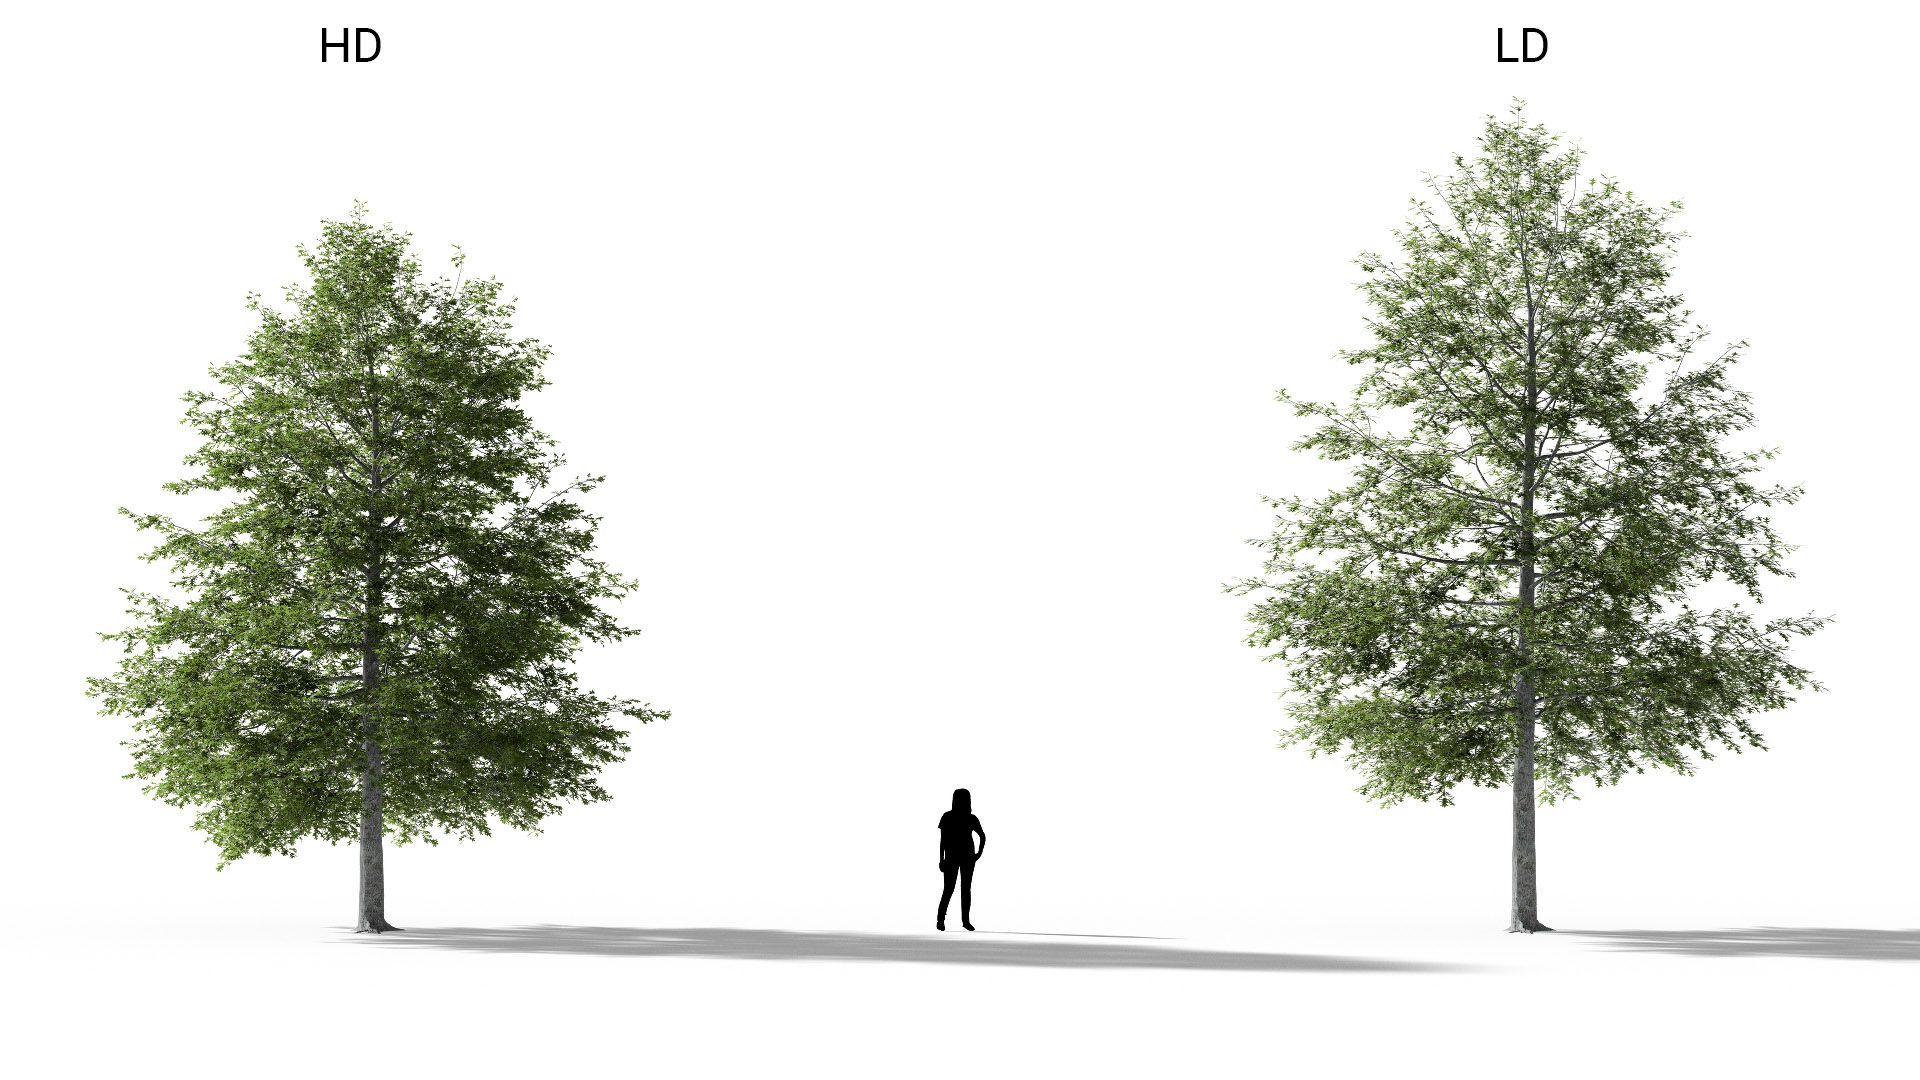 3D model of the Swamp oak Quercus palustris included versions